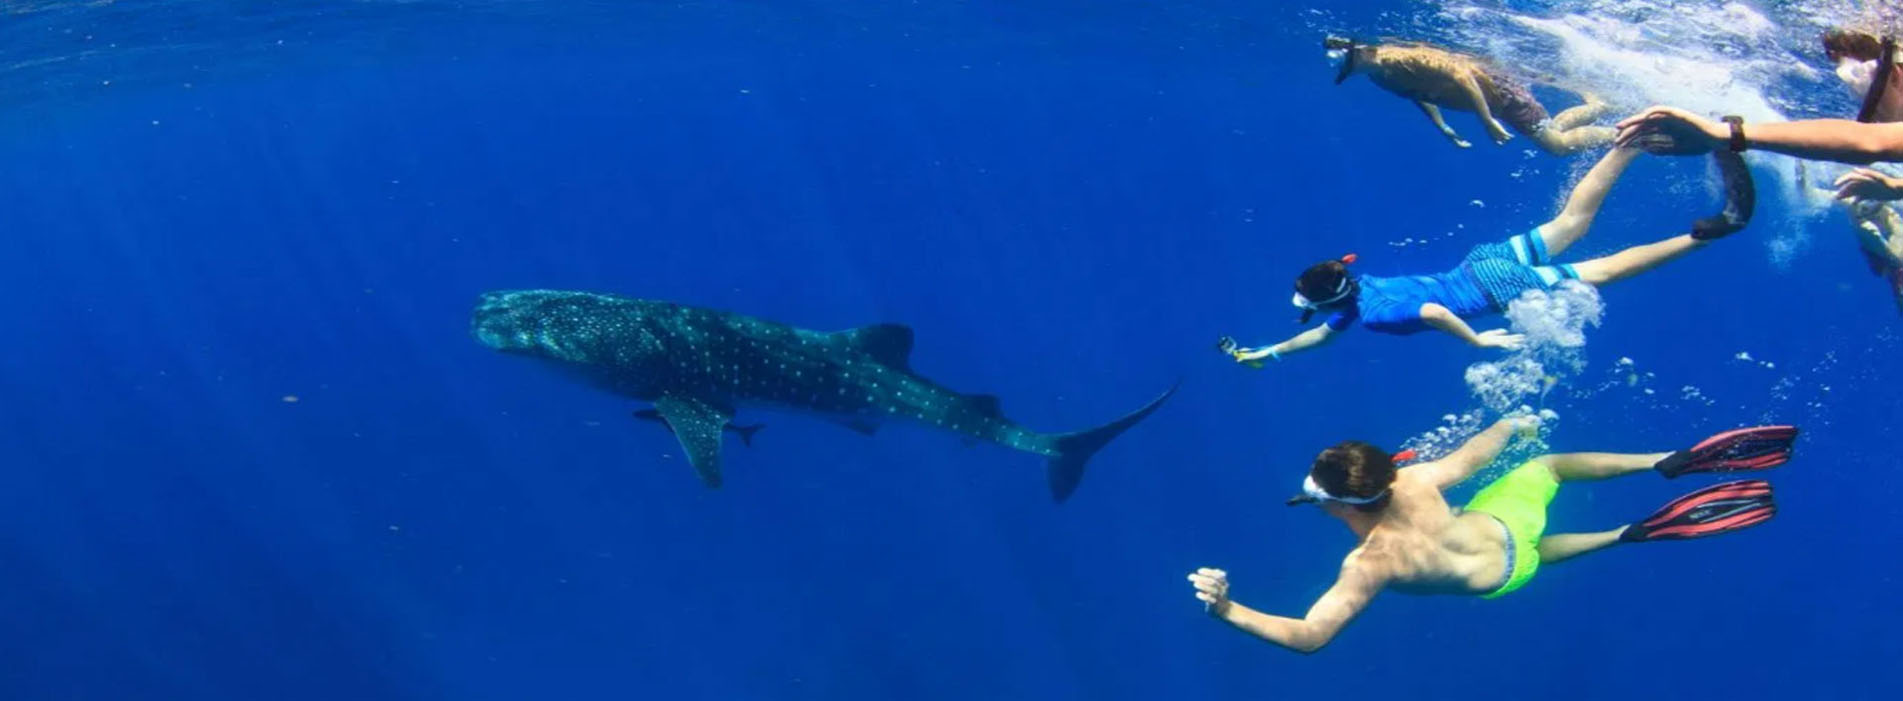 VENTURE-IV-people-in-water-whale-shark